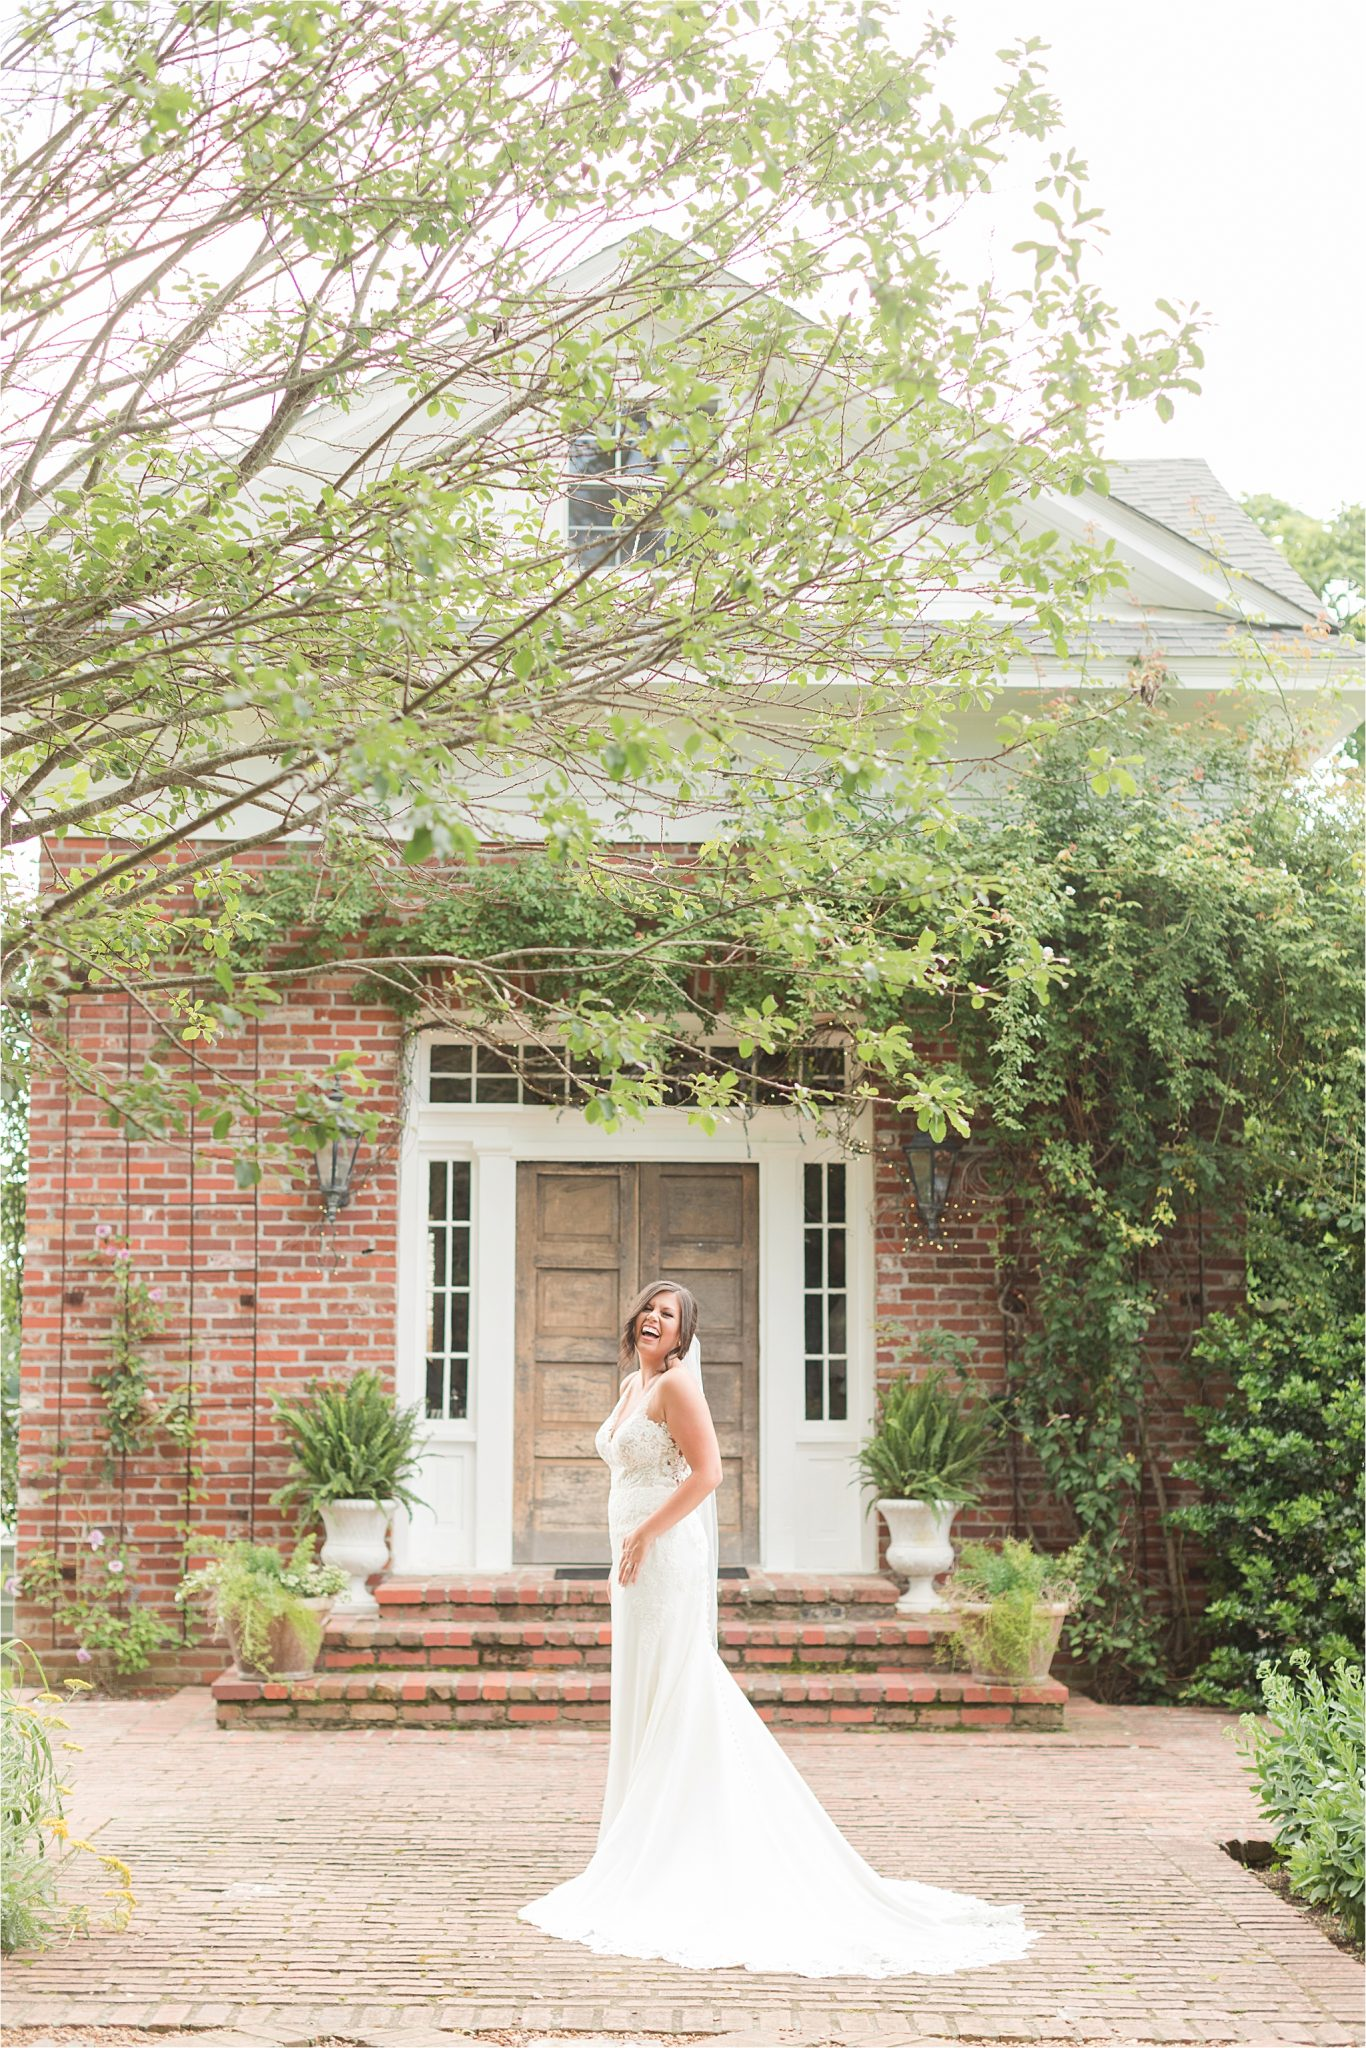 Hedge Farm Wedding, Alabama Wedding Photographer, Barn Wedding, Bride, Wedding dress, Neutrals